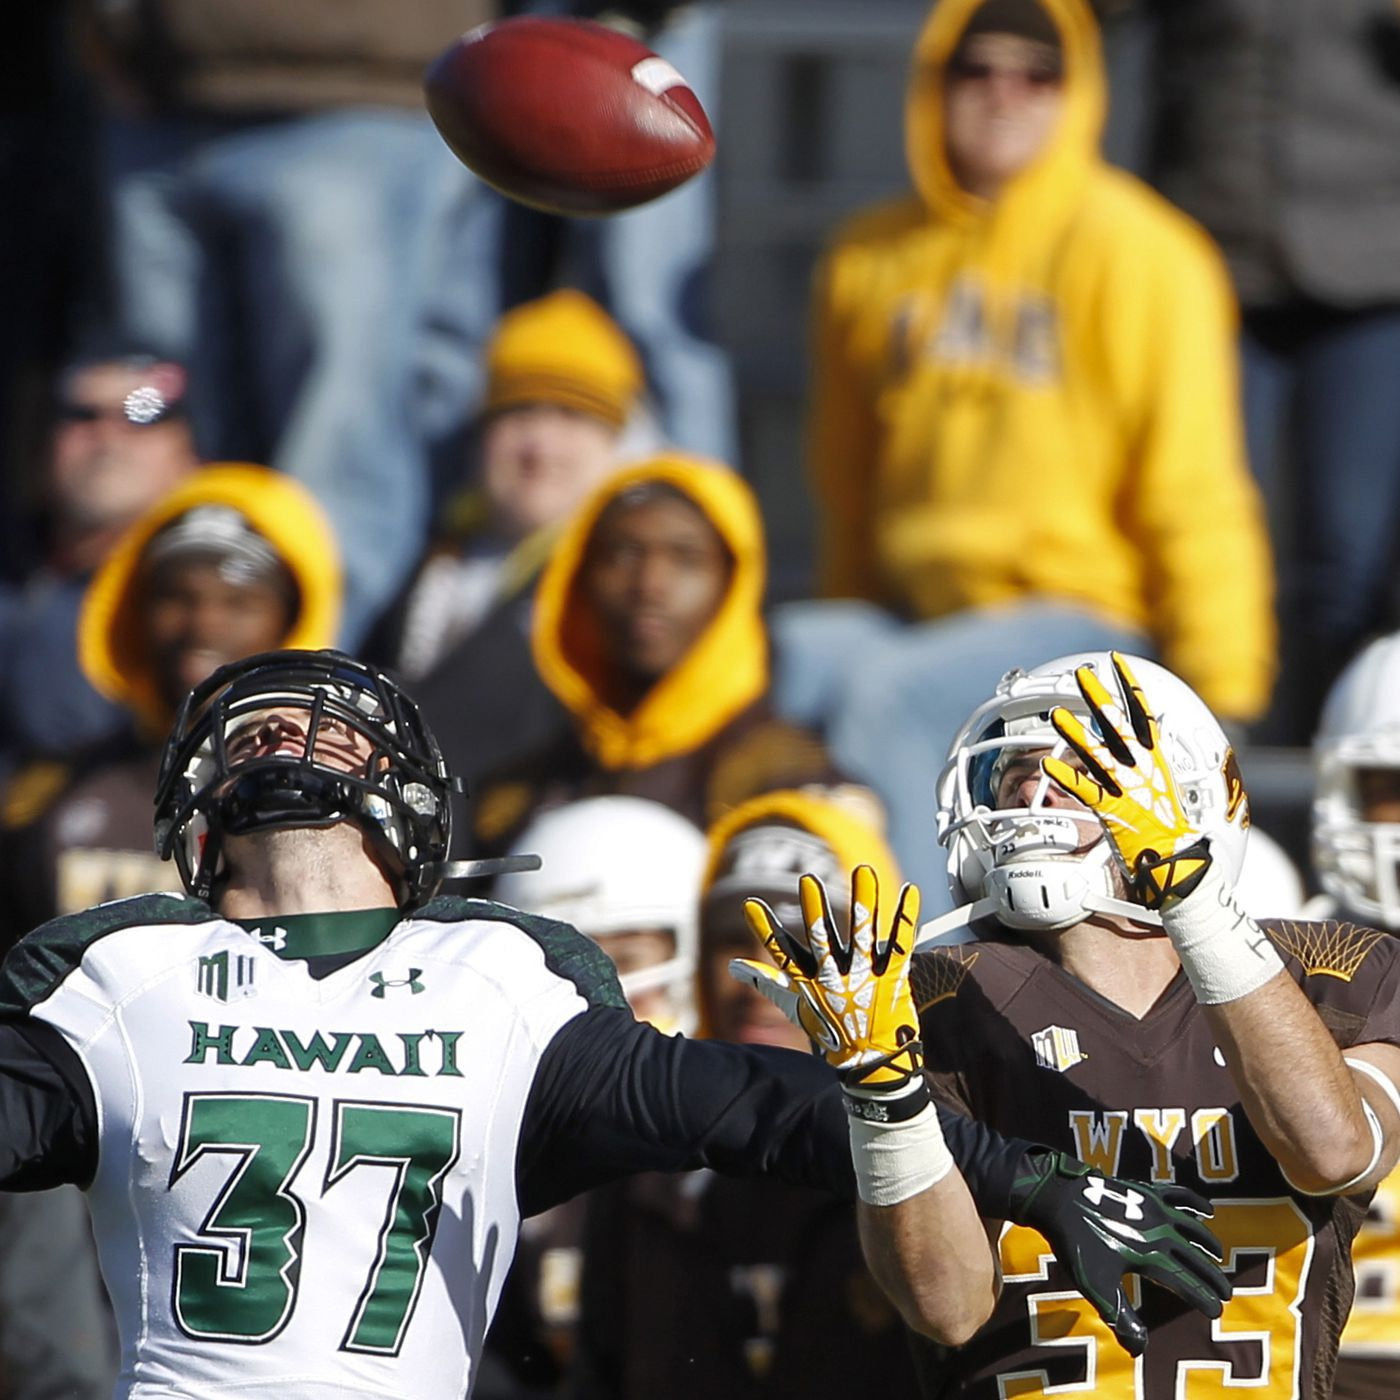 Wyoming Vs Hawaii Live Stream Tv Schedule Game Guide And Odds Sbnation Com